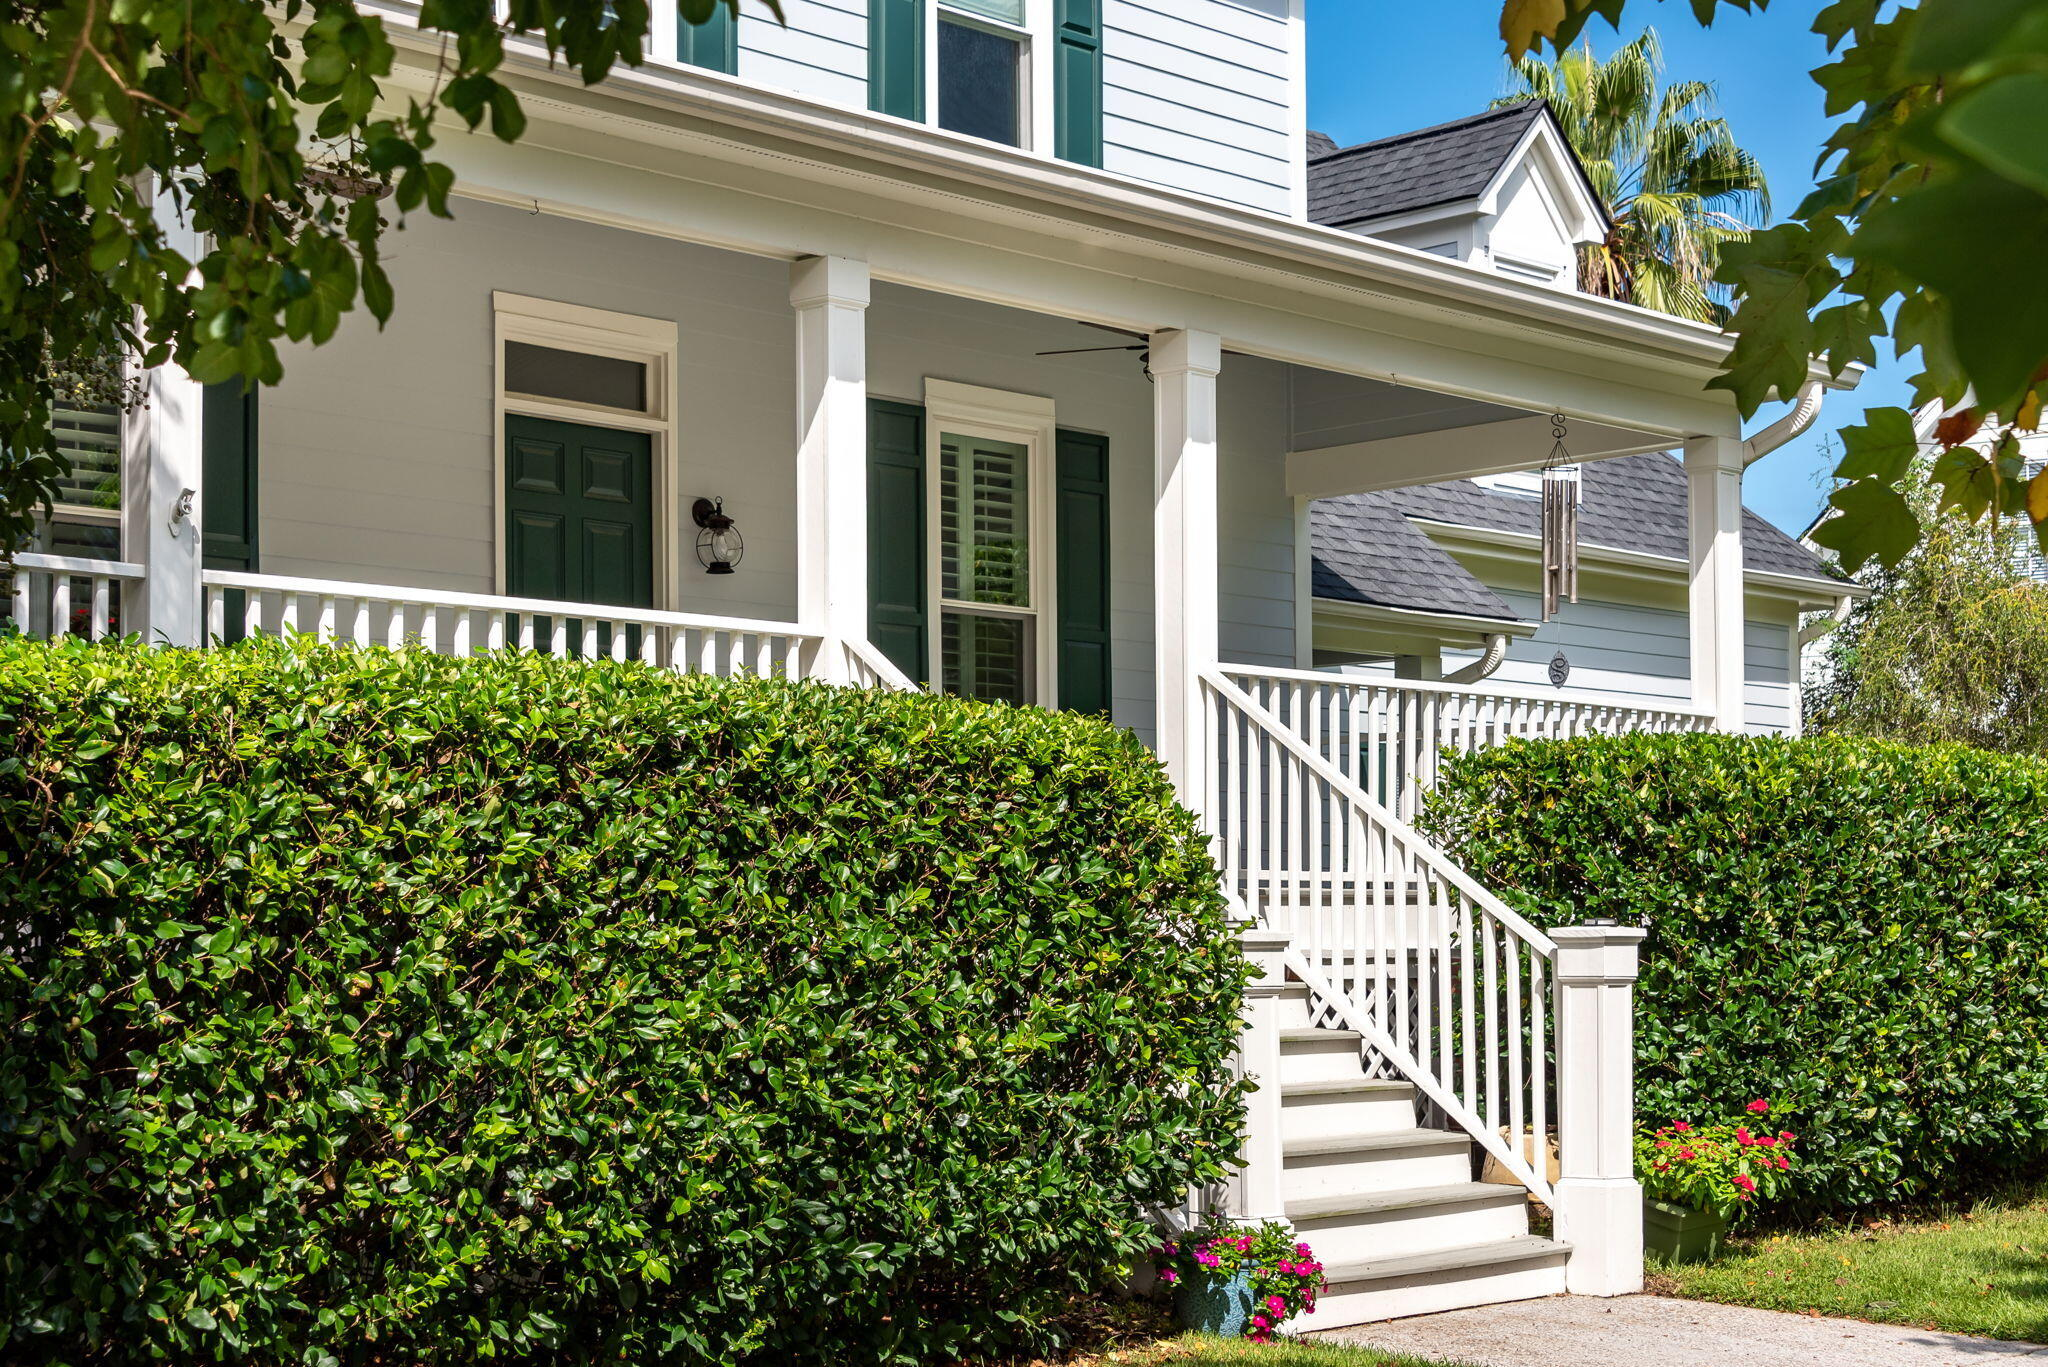 Rivertowne On The Wando Homes For Sale - 2301 Hartfords Bluff, Mount Pleasant, SC - 9